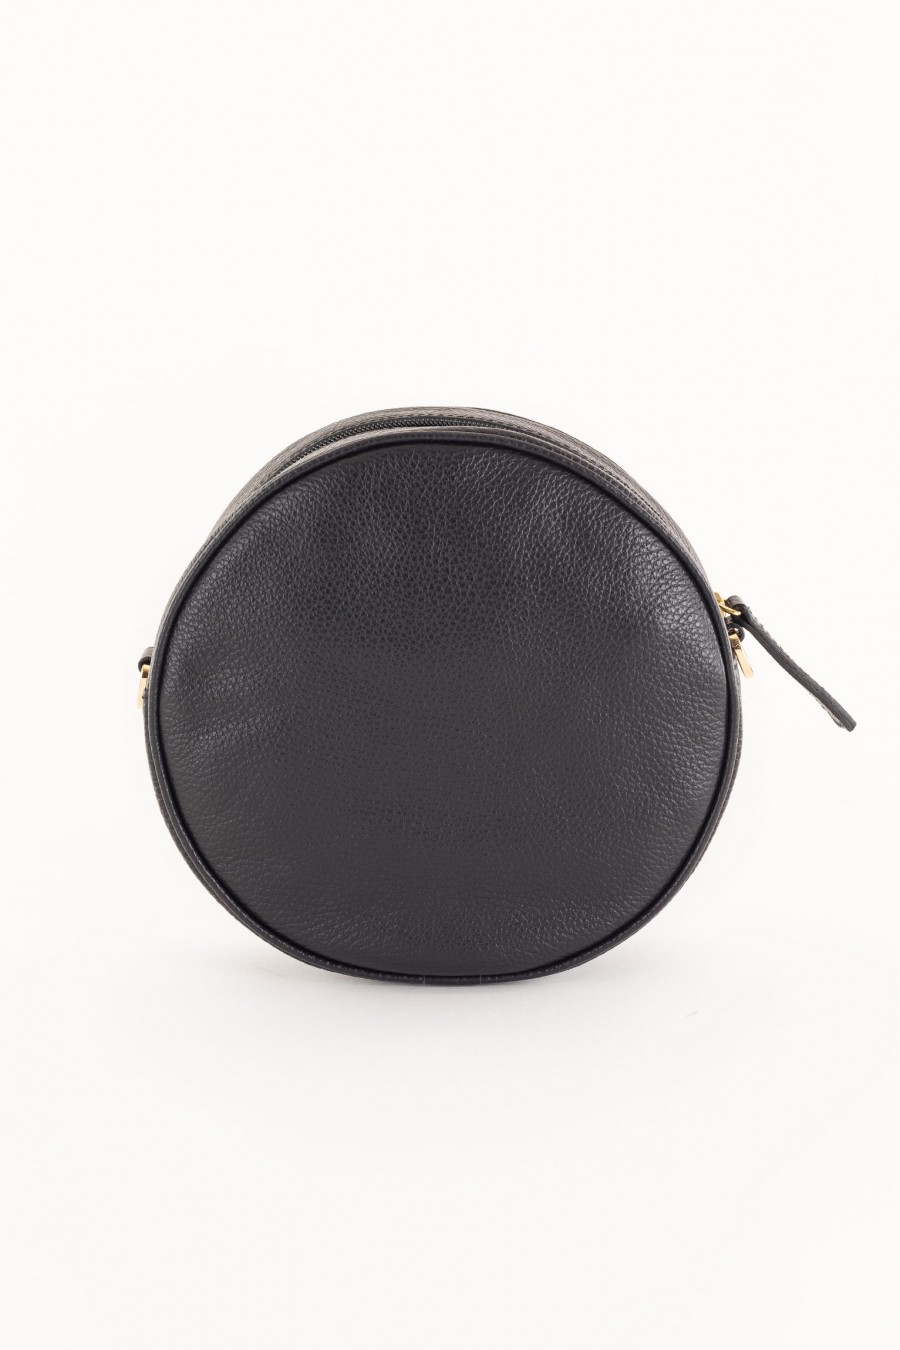 black round bag with shoulder strap